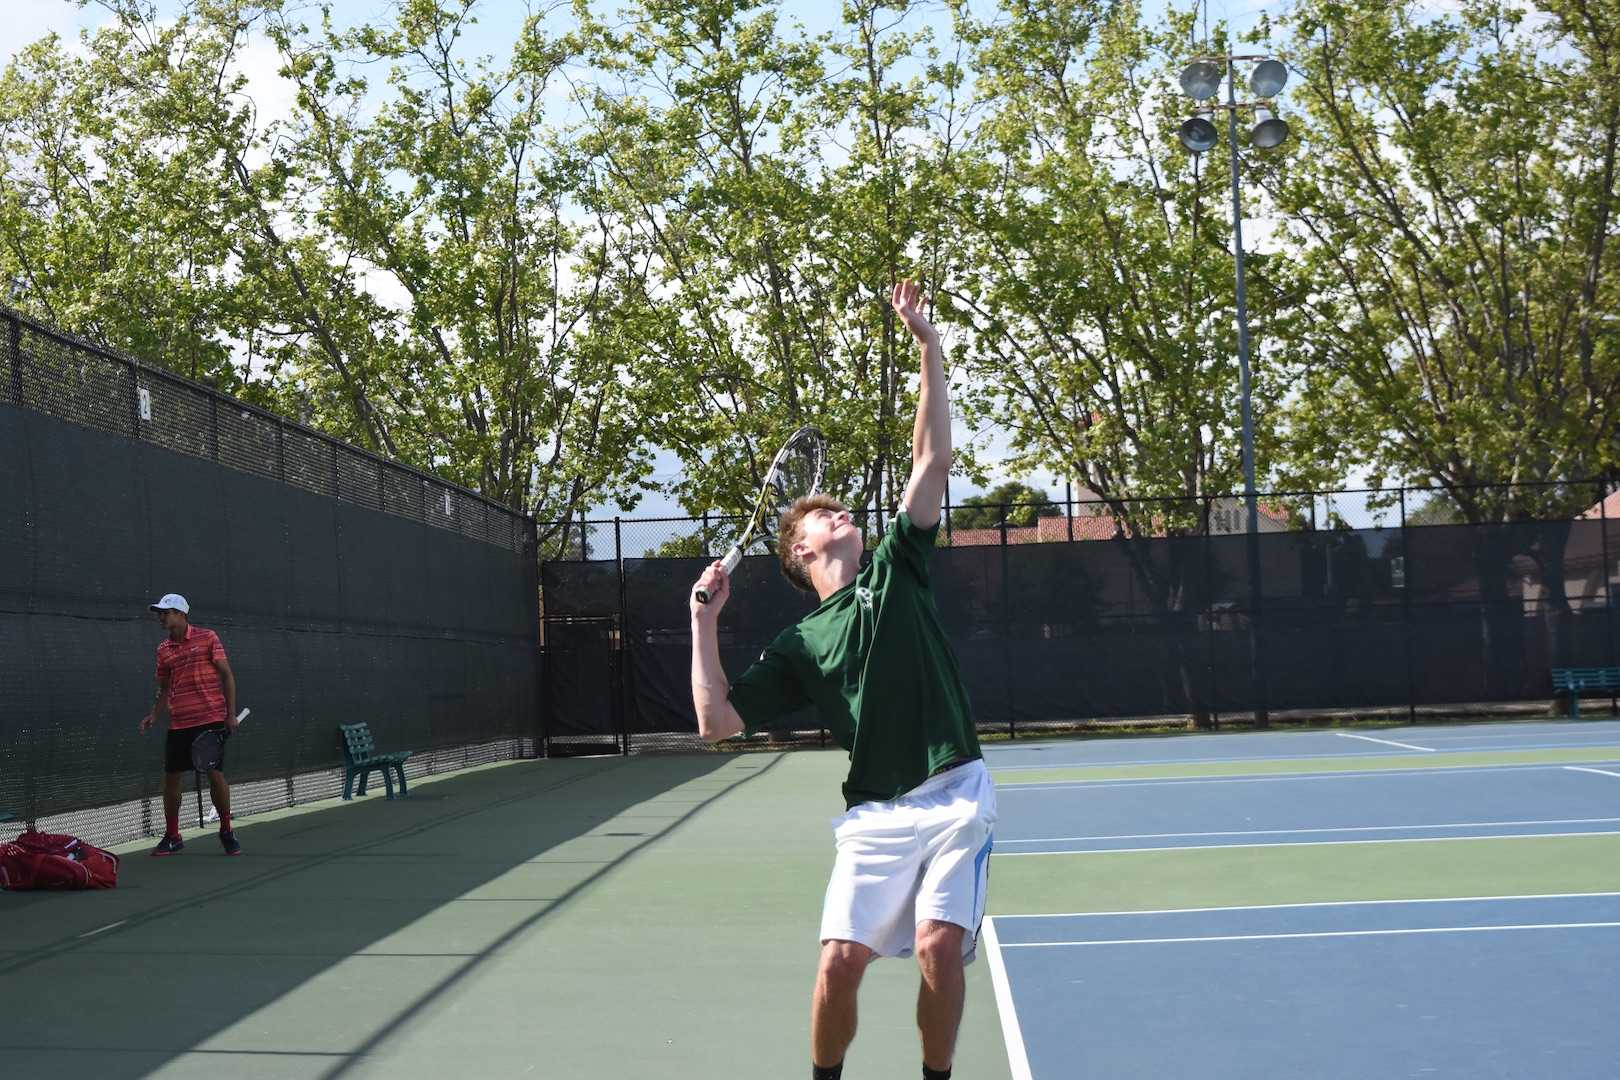 Senior Adrian Tompert serves a ball to his opponent.